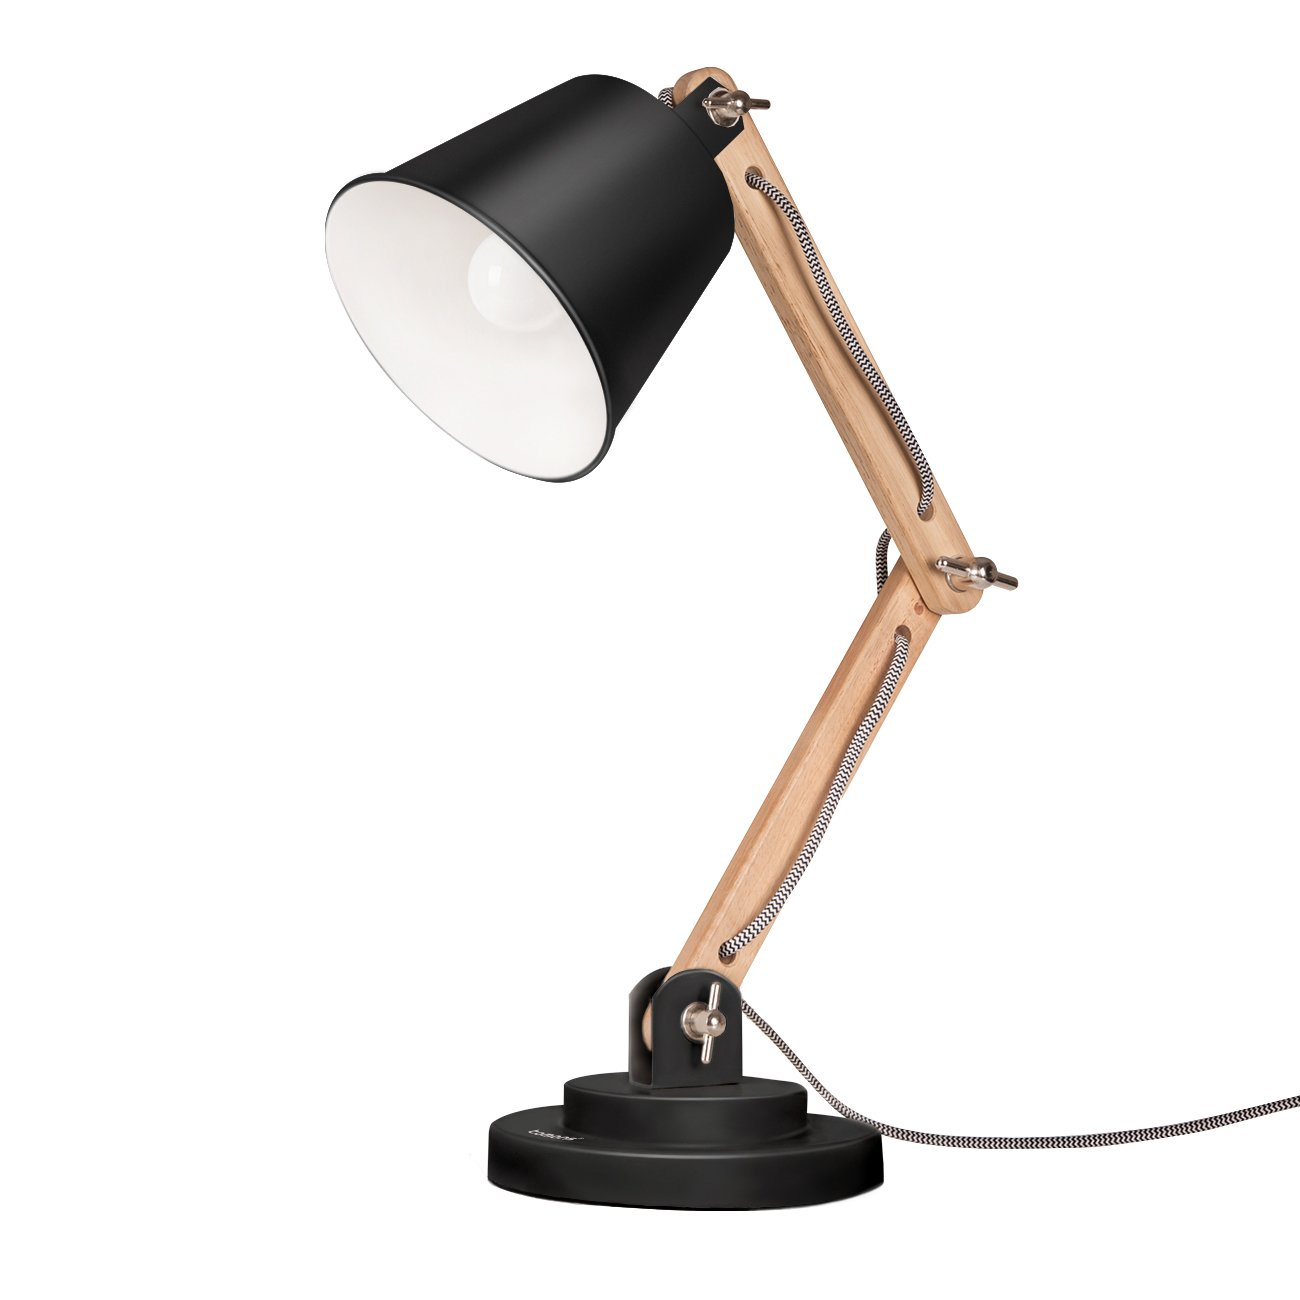 dimmer dimmable with care drafting lighting led proinfo lamp arm clamp modes metal byb task architect swing eye table level desk